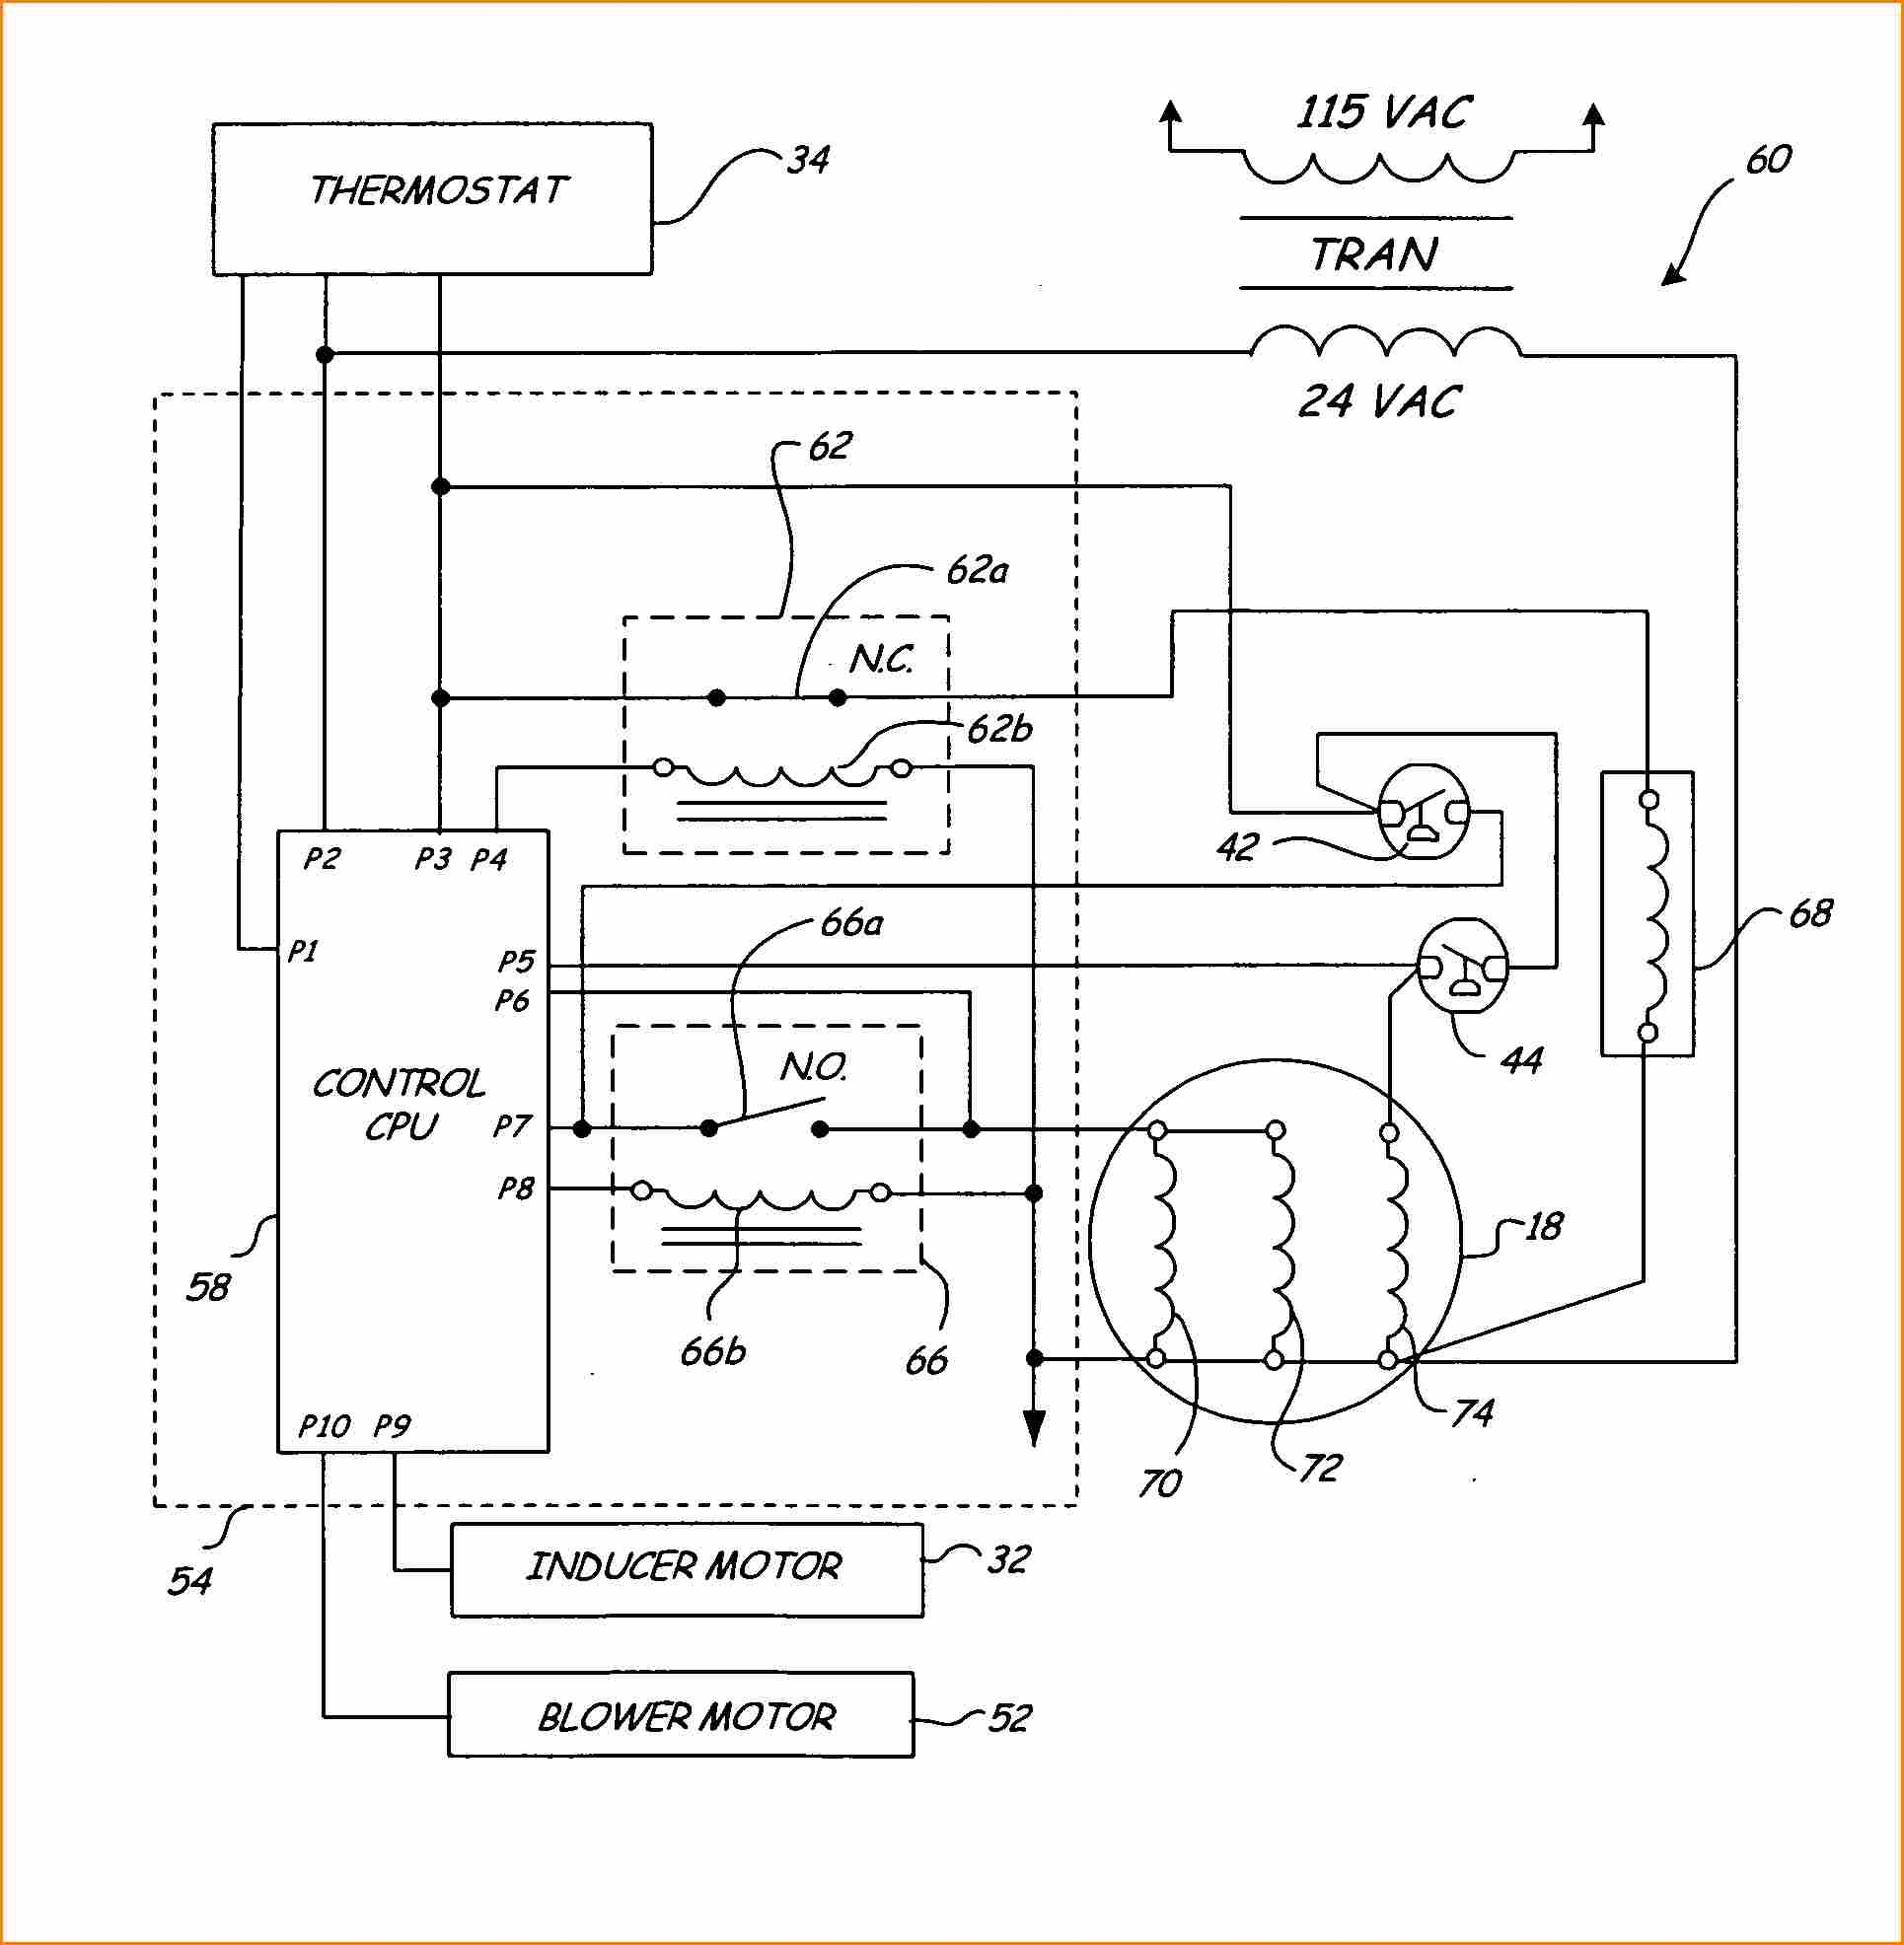 modine heater wiring diagram Collection-Modine Gas Heater Wiring Diagram Luxury Gas Furnace Wiring Diagram Modine Gas Heater Wiring Diagram 2-i